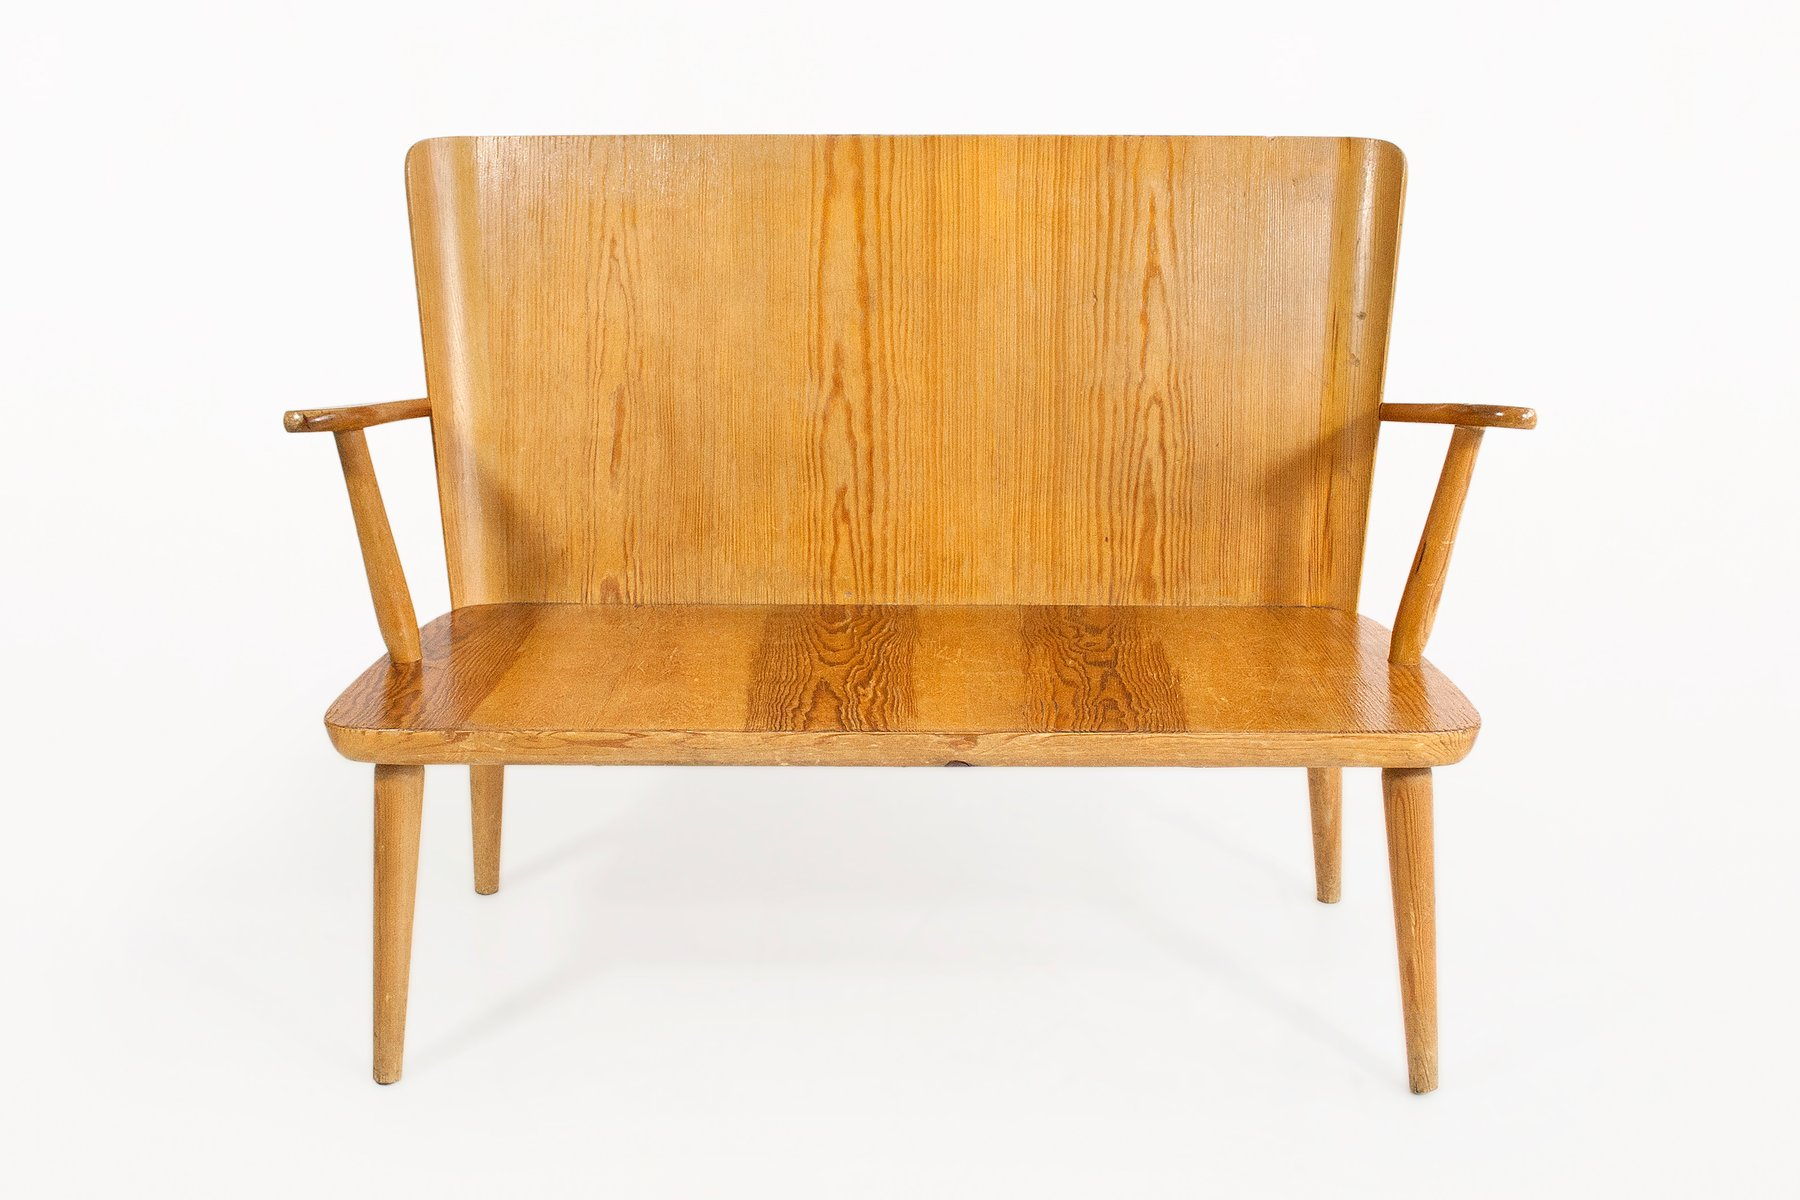 Mid Century Swedish Elm Bench 1950s For Sale At Pamono